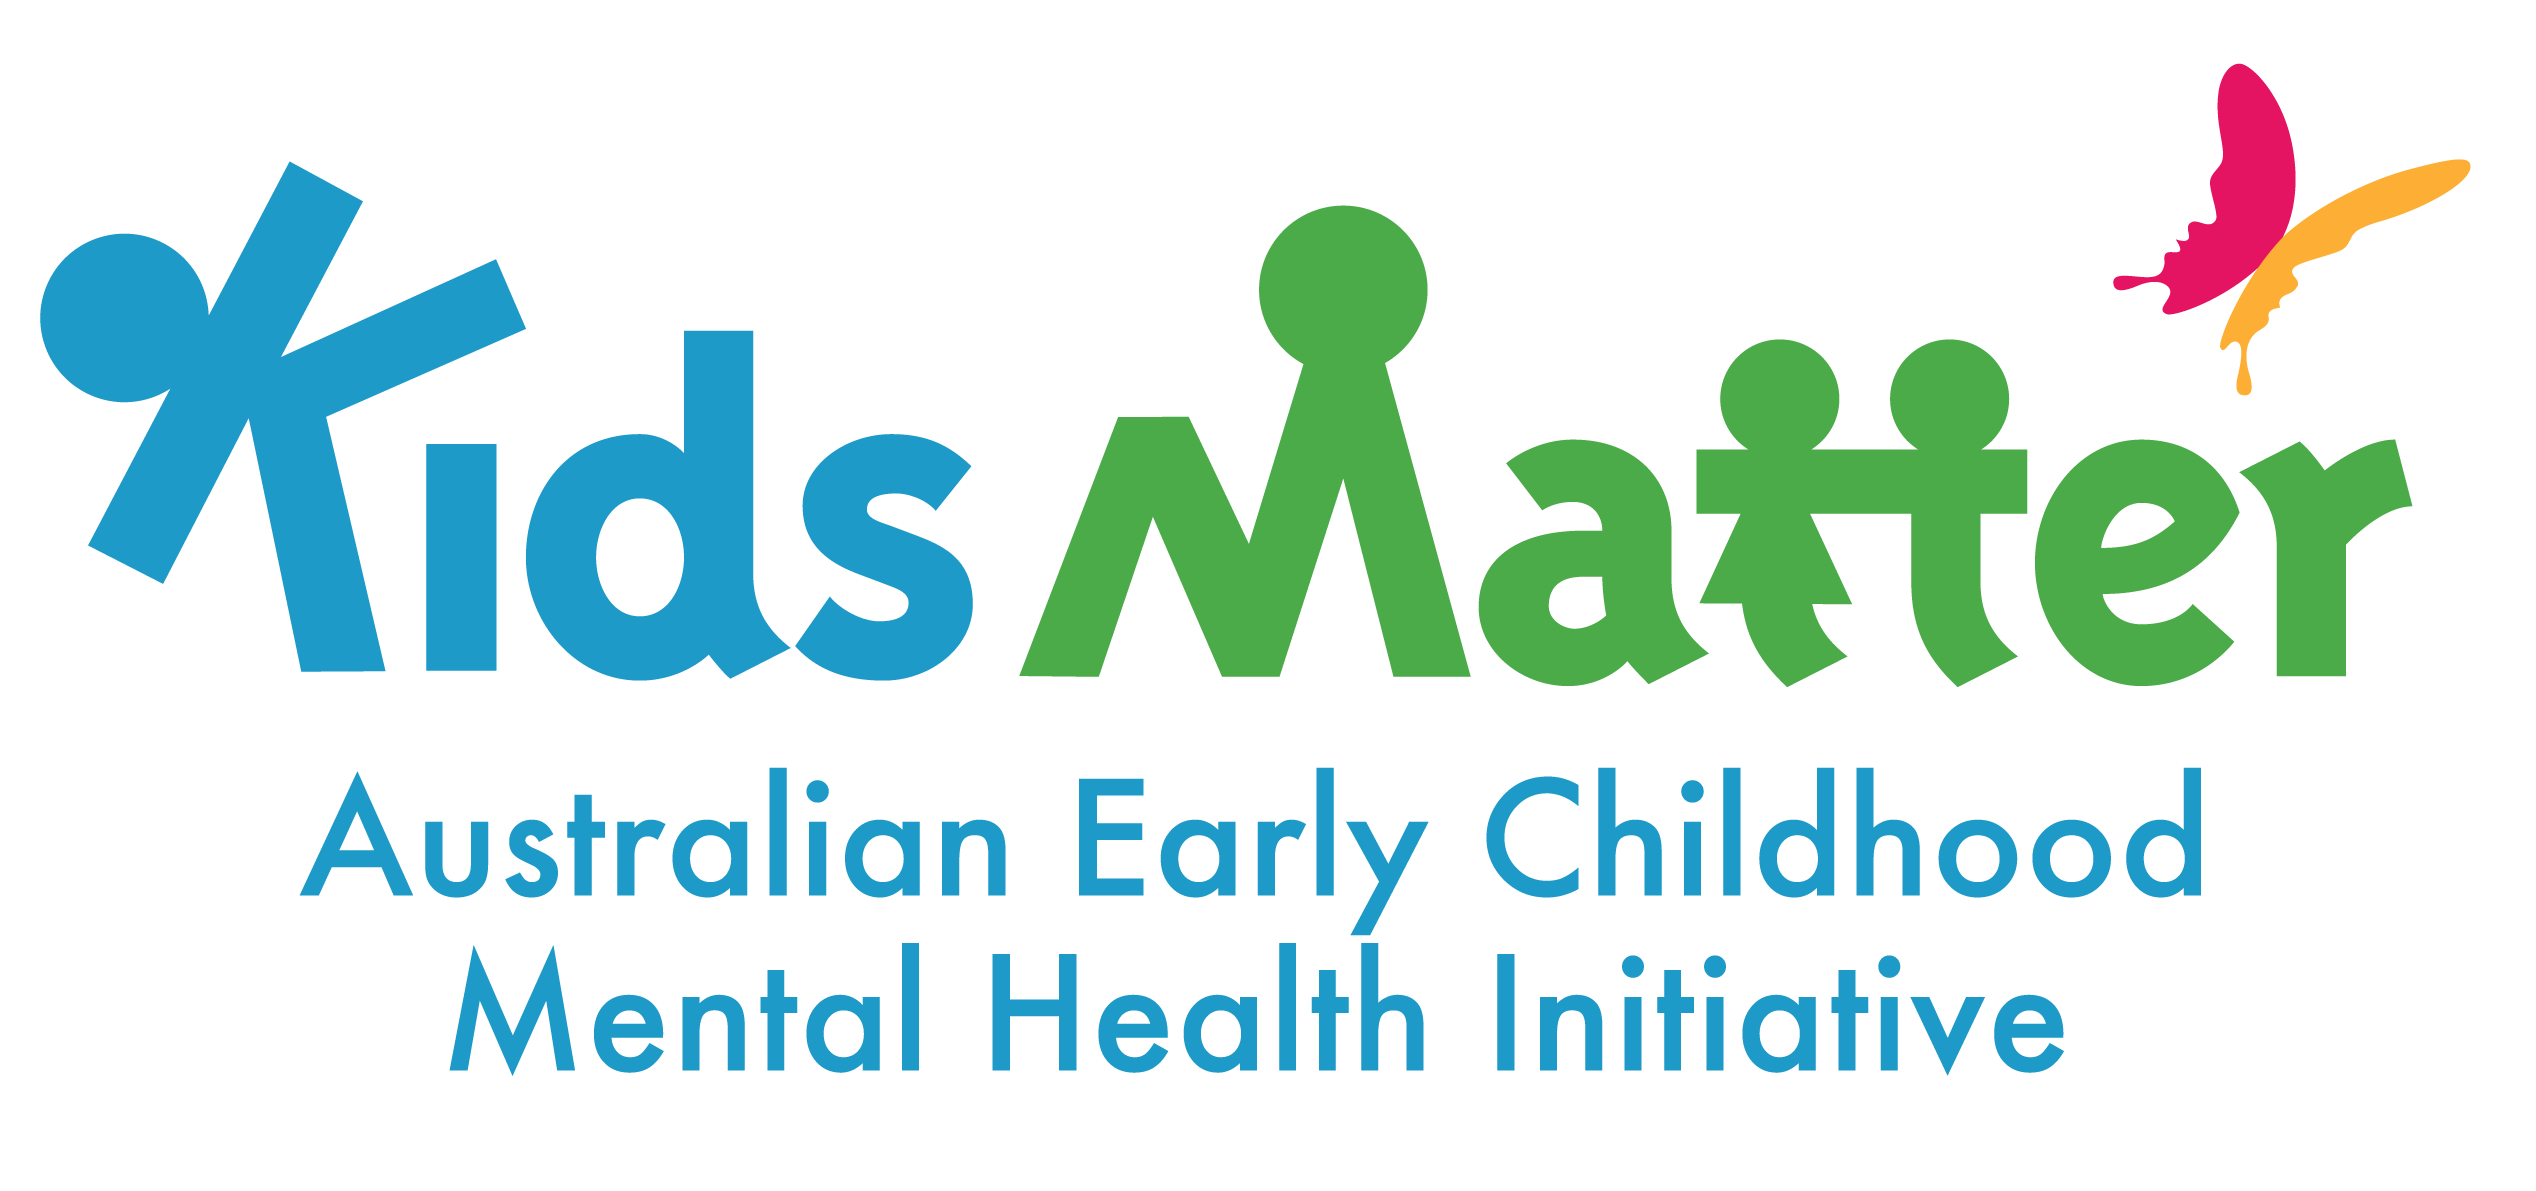 Kids Matter Mental Health